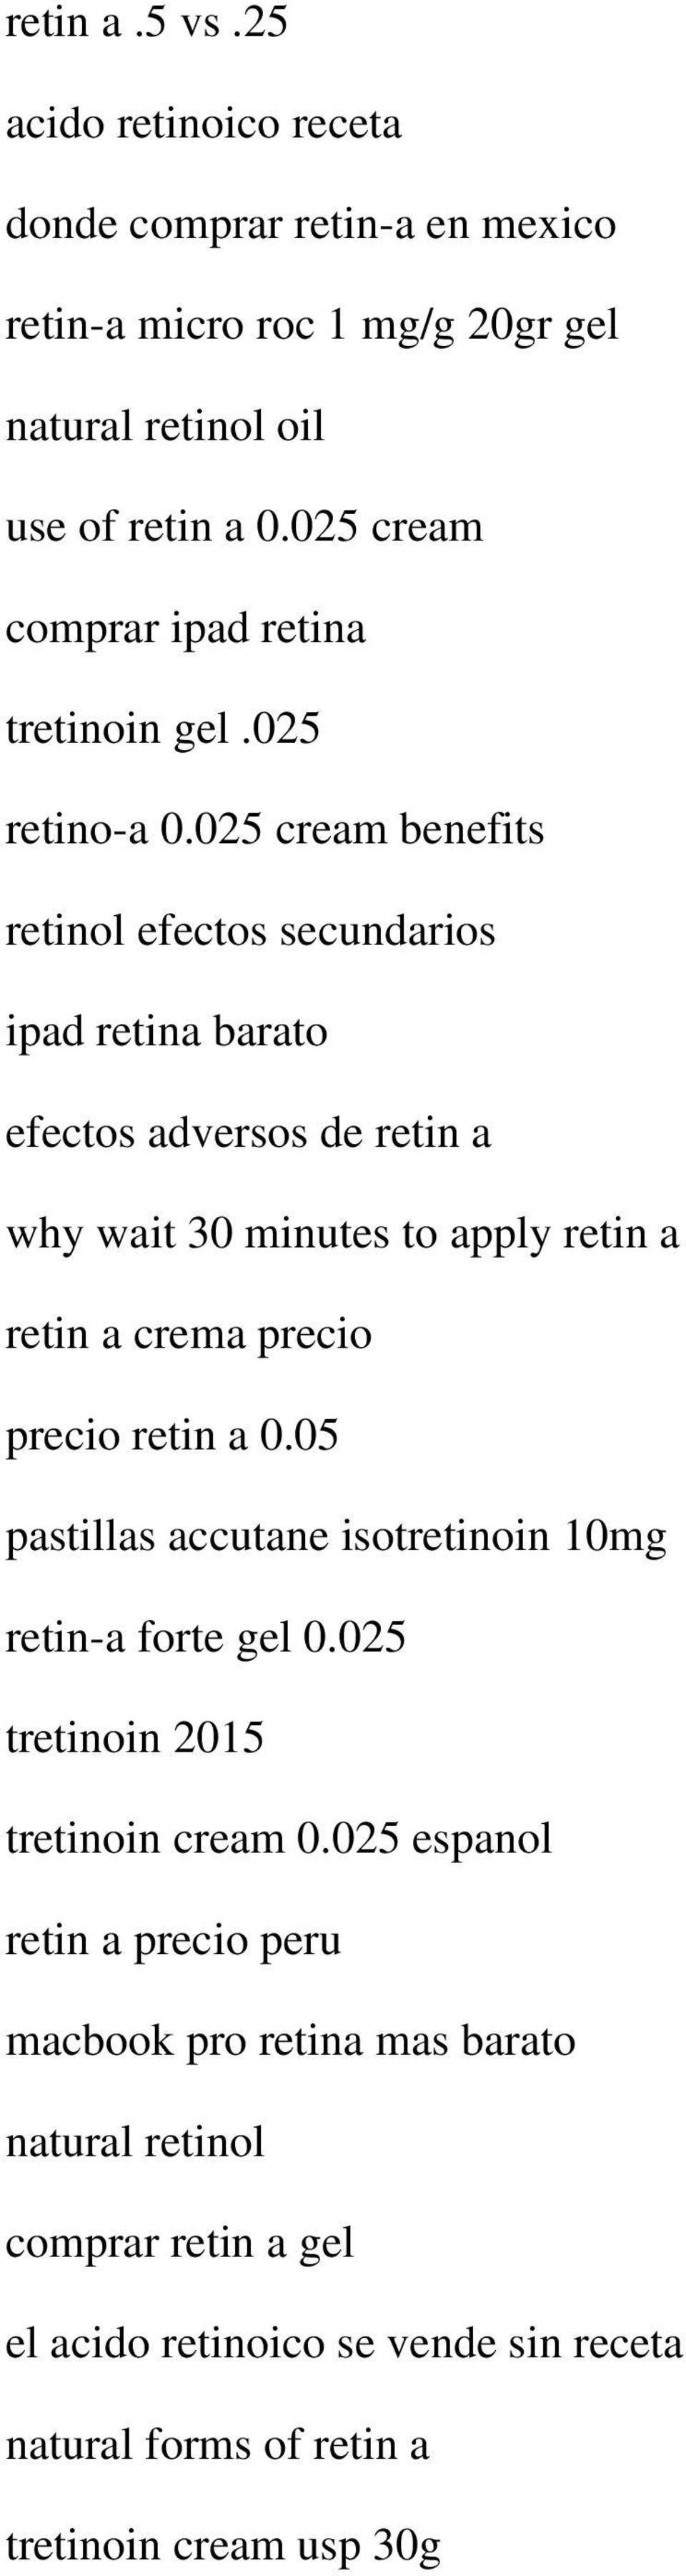 025 cream benefits retinol efectos secundarios ipad retina barato efectos adversos de retin a why wait 30 minutes to apply retin a retin a crema precio precio